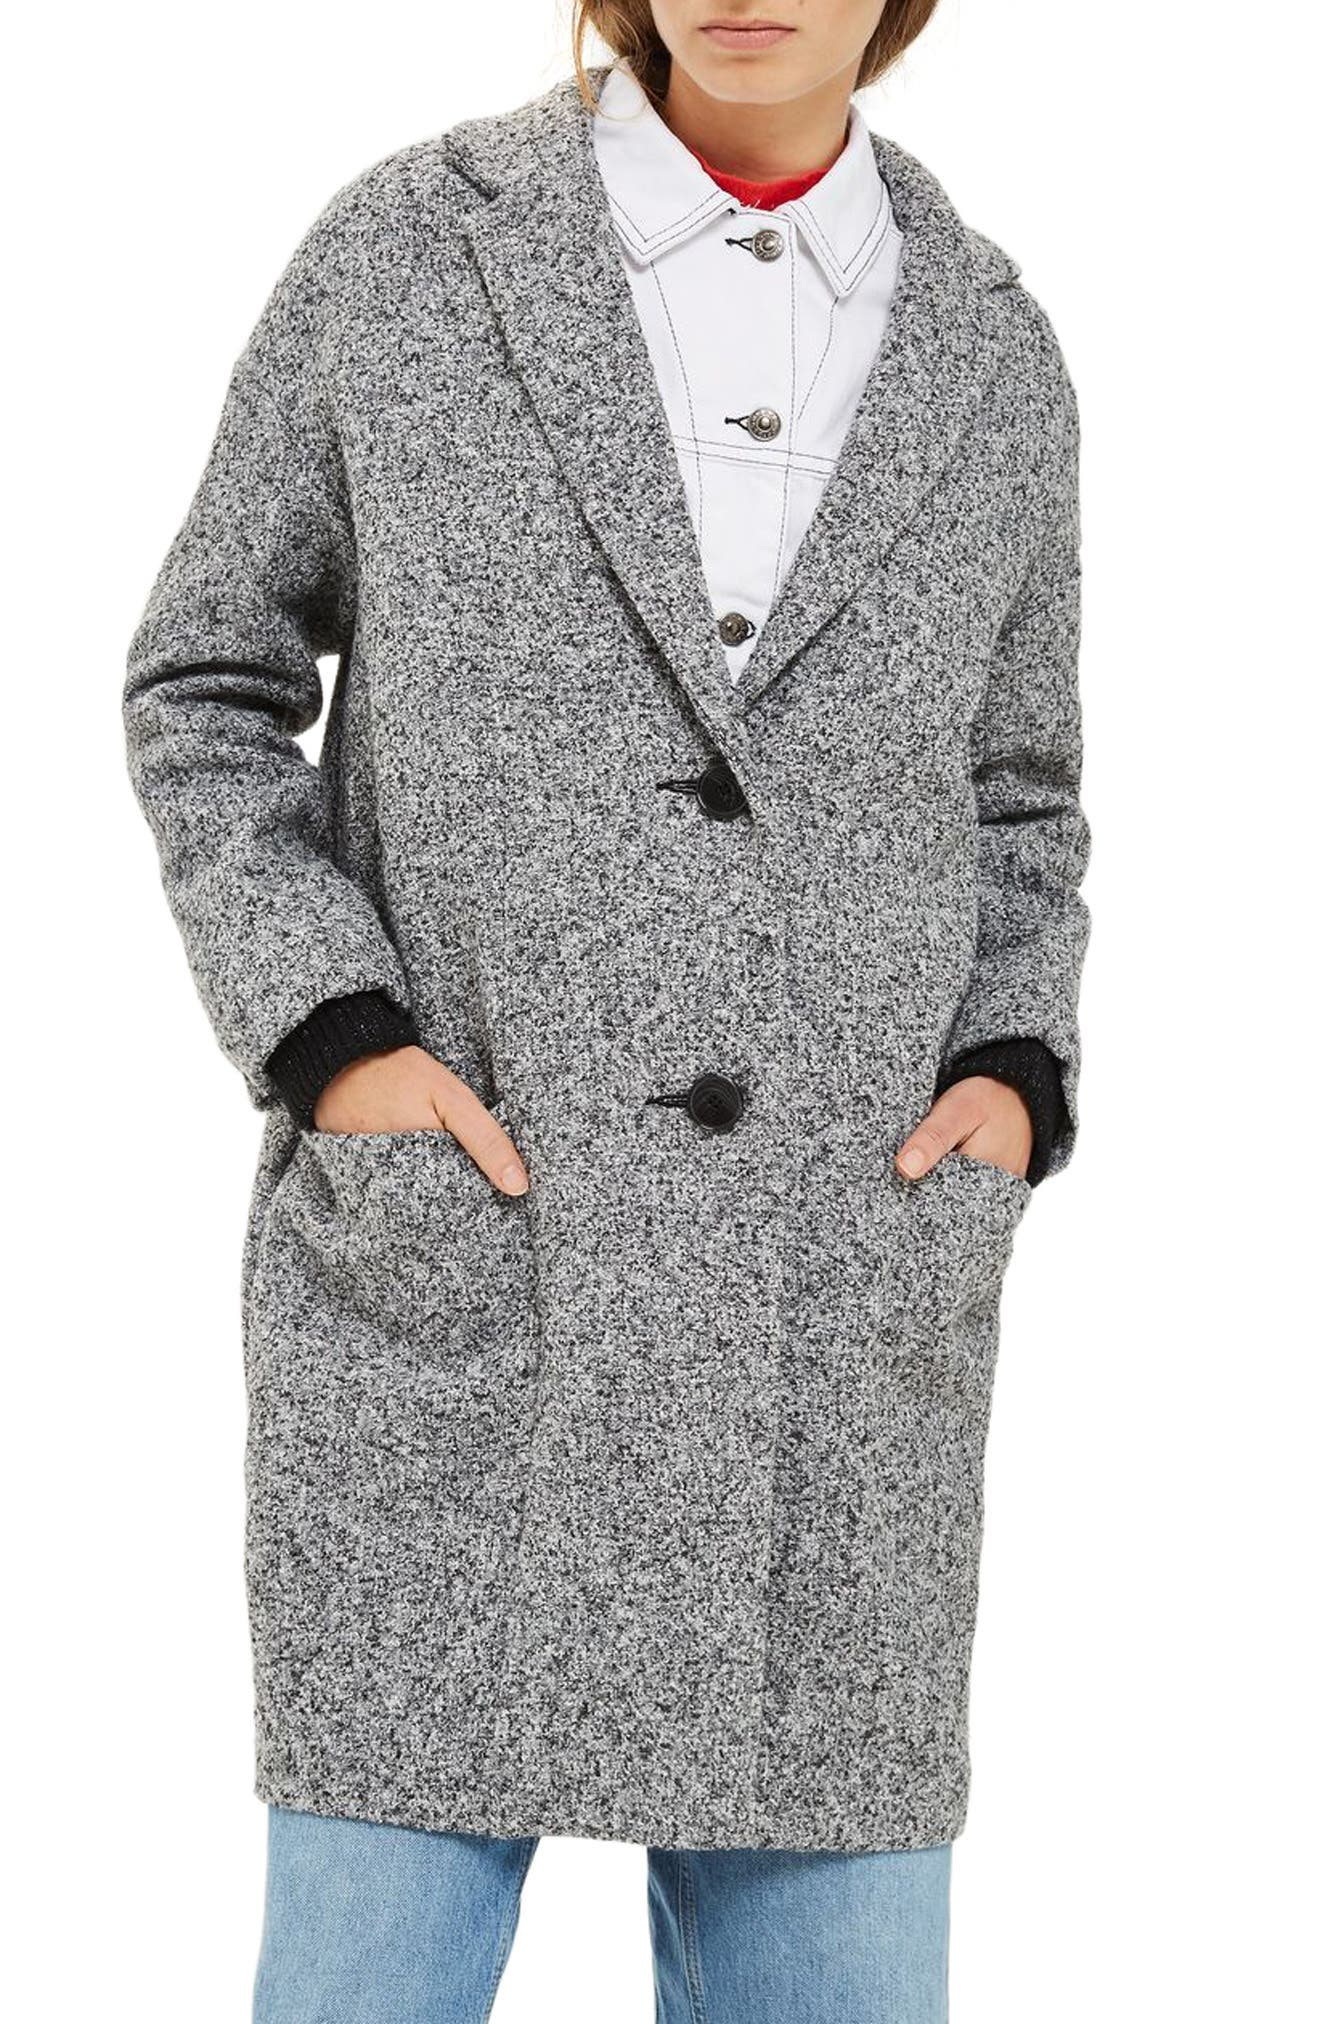 Textured Cocoon Coat,                             Main thumbnail 1, color,                             Grey Multi